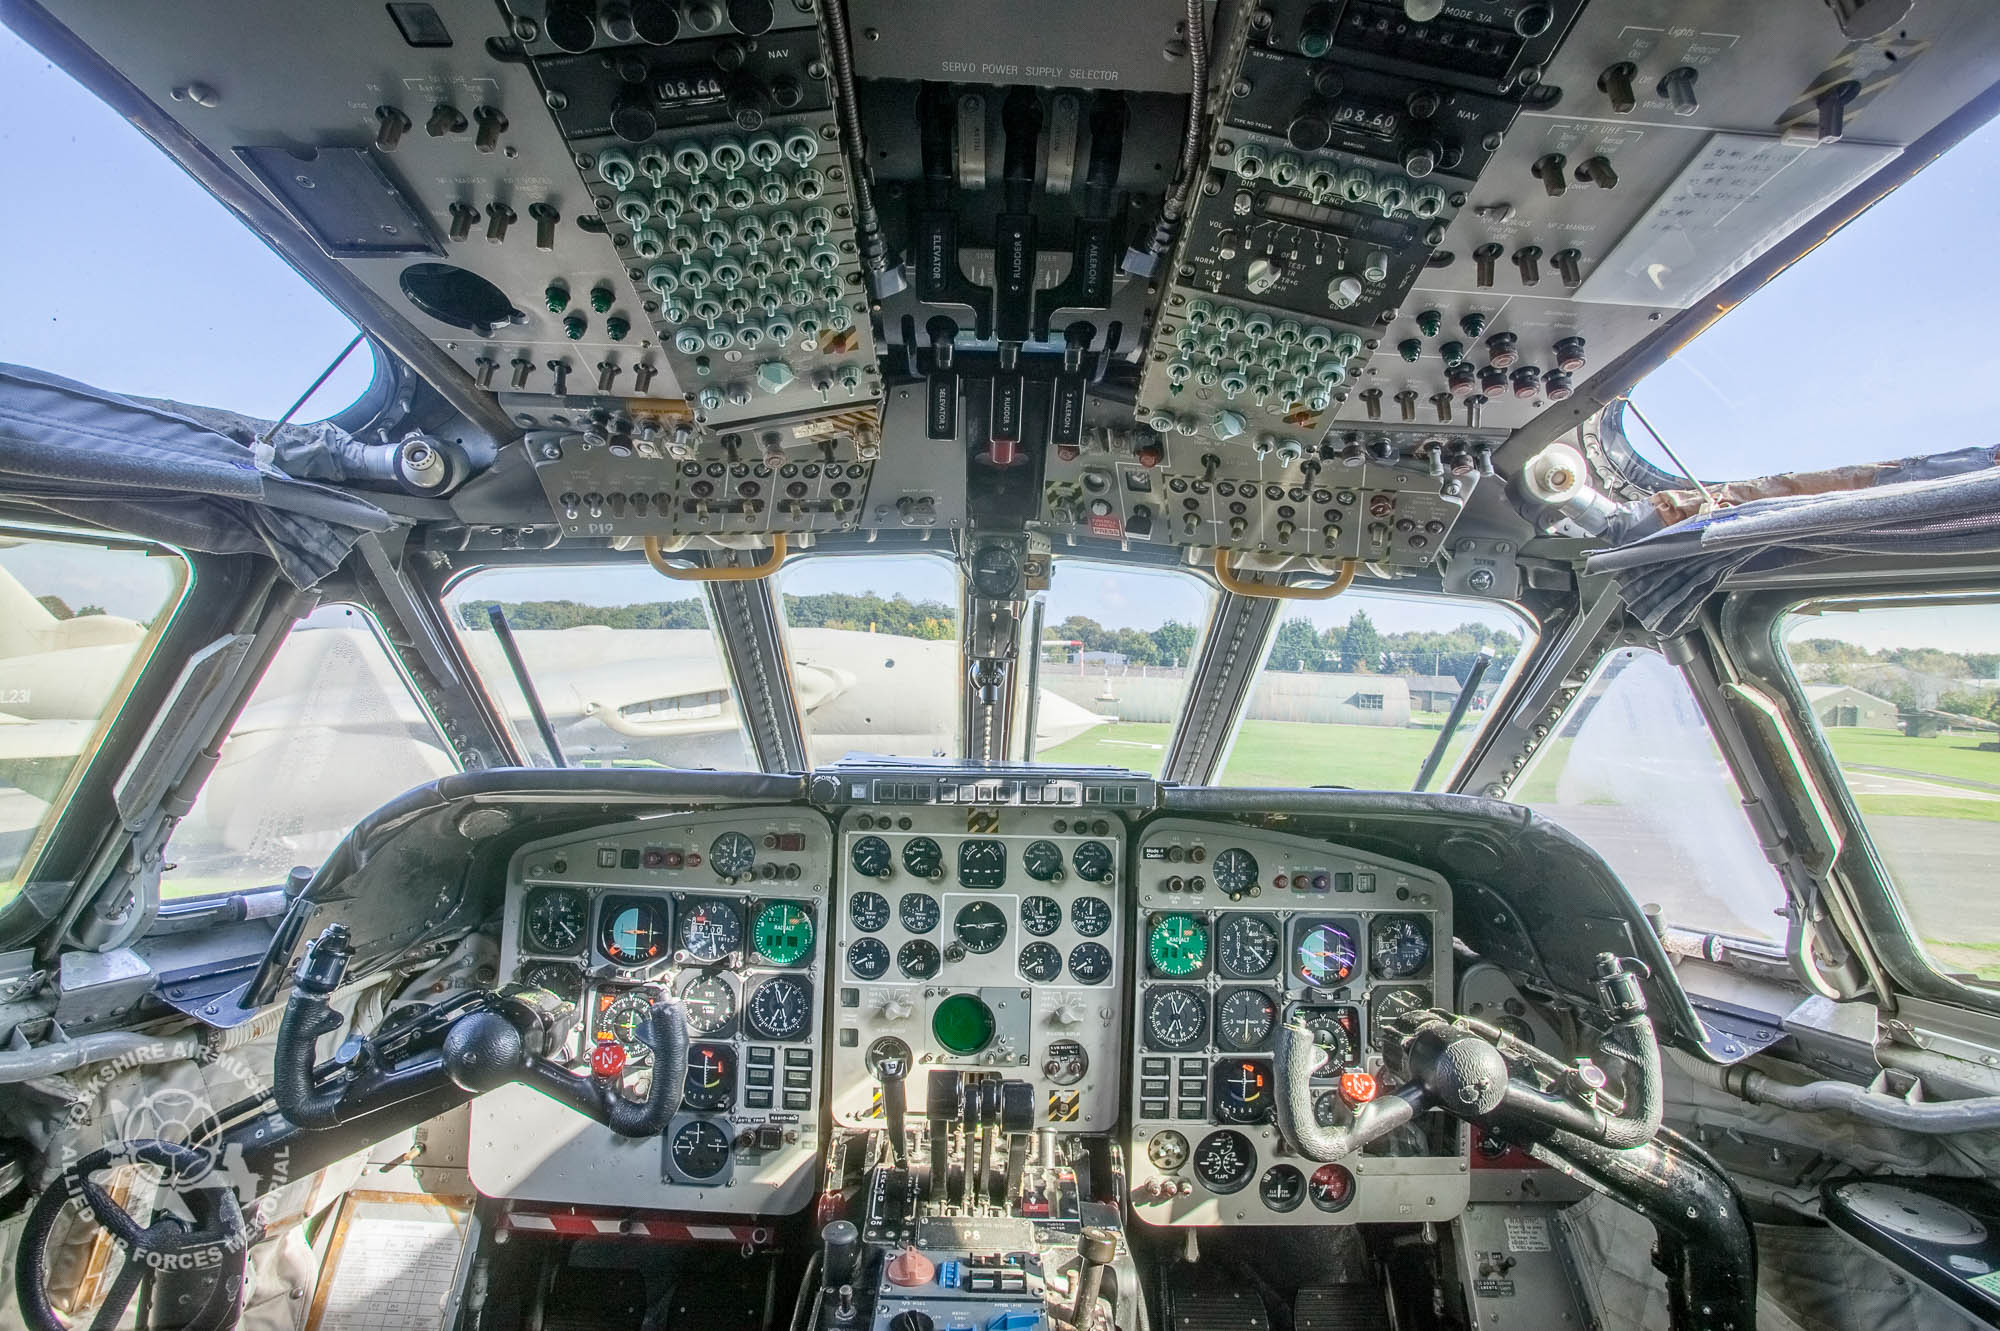 On the flight deck of Nimrod XV250